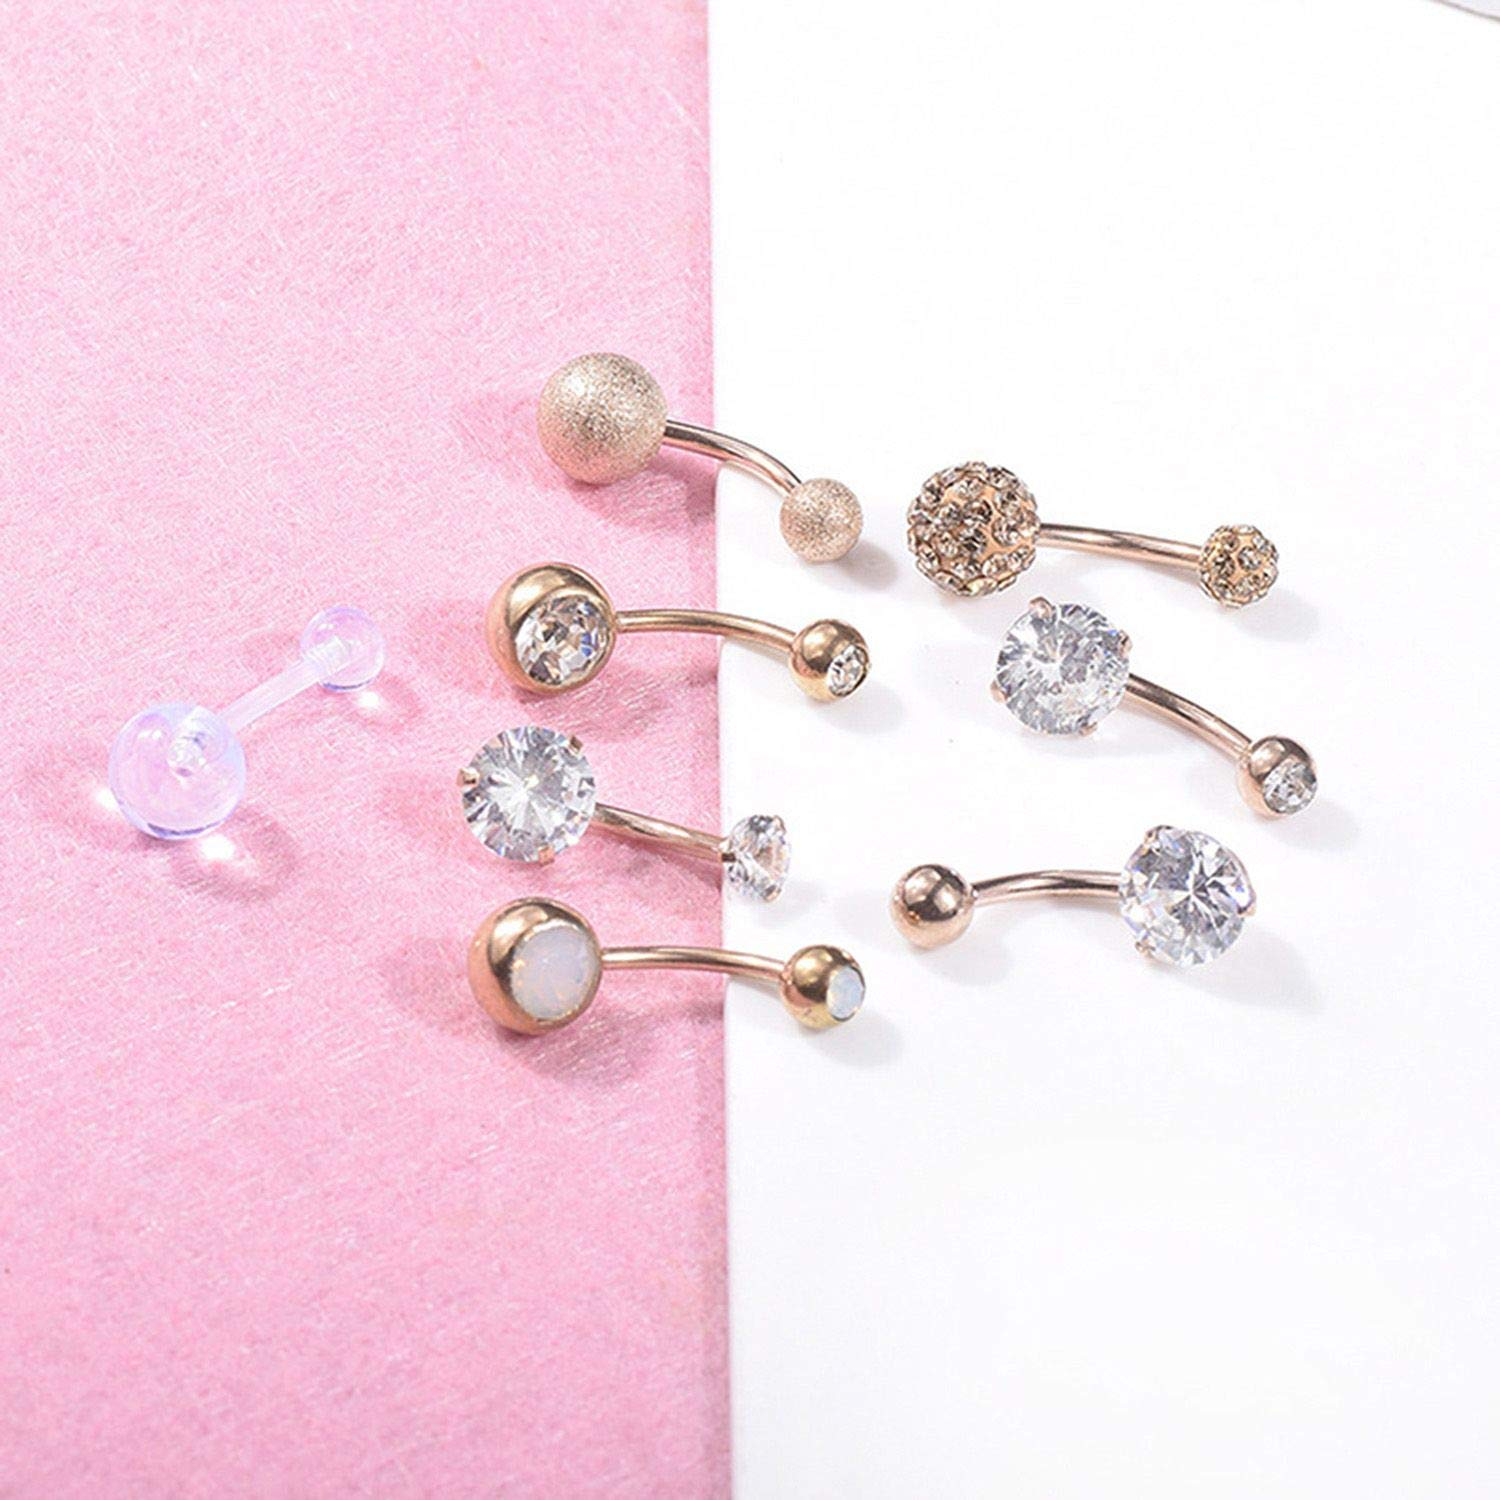 cengXY160h 8 Pcs//Set Multicolor Crystal Steel Navel Rings Belly Button Ring Bar Body Piercing Jewelry